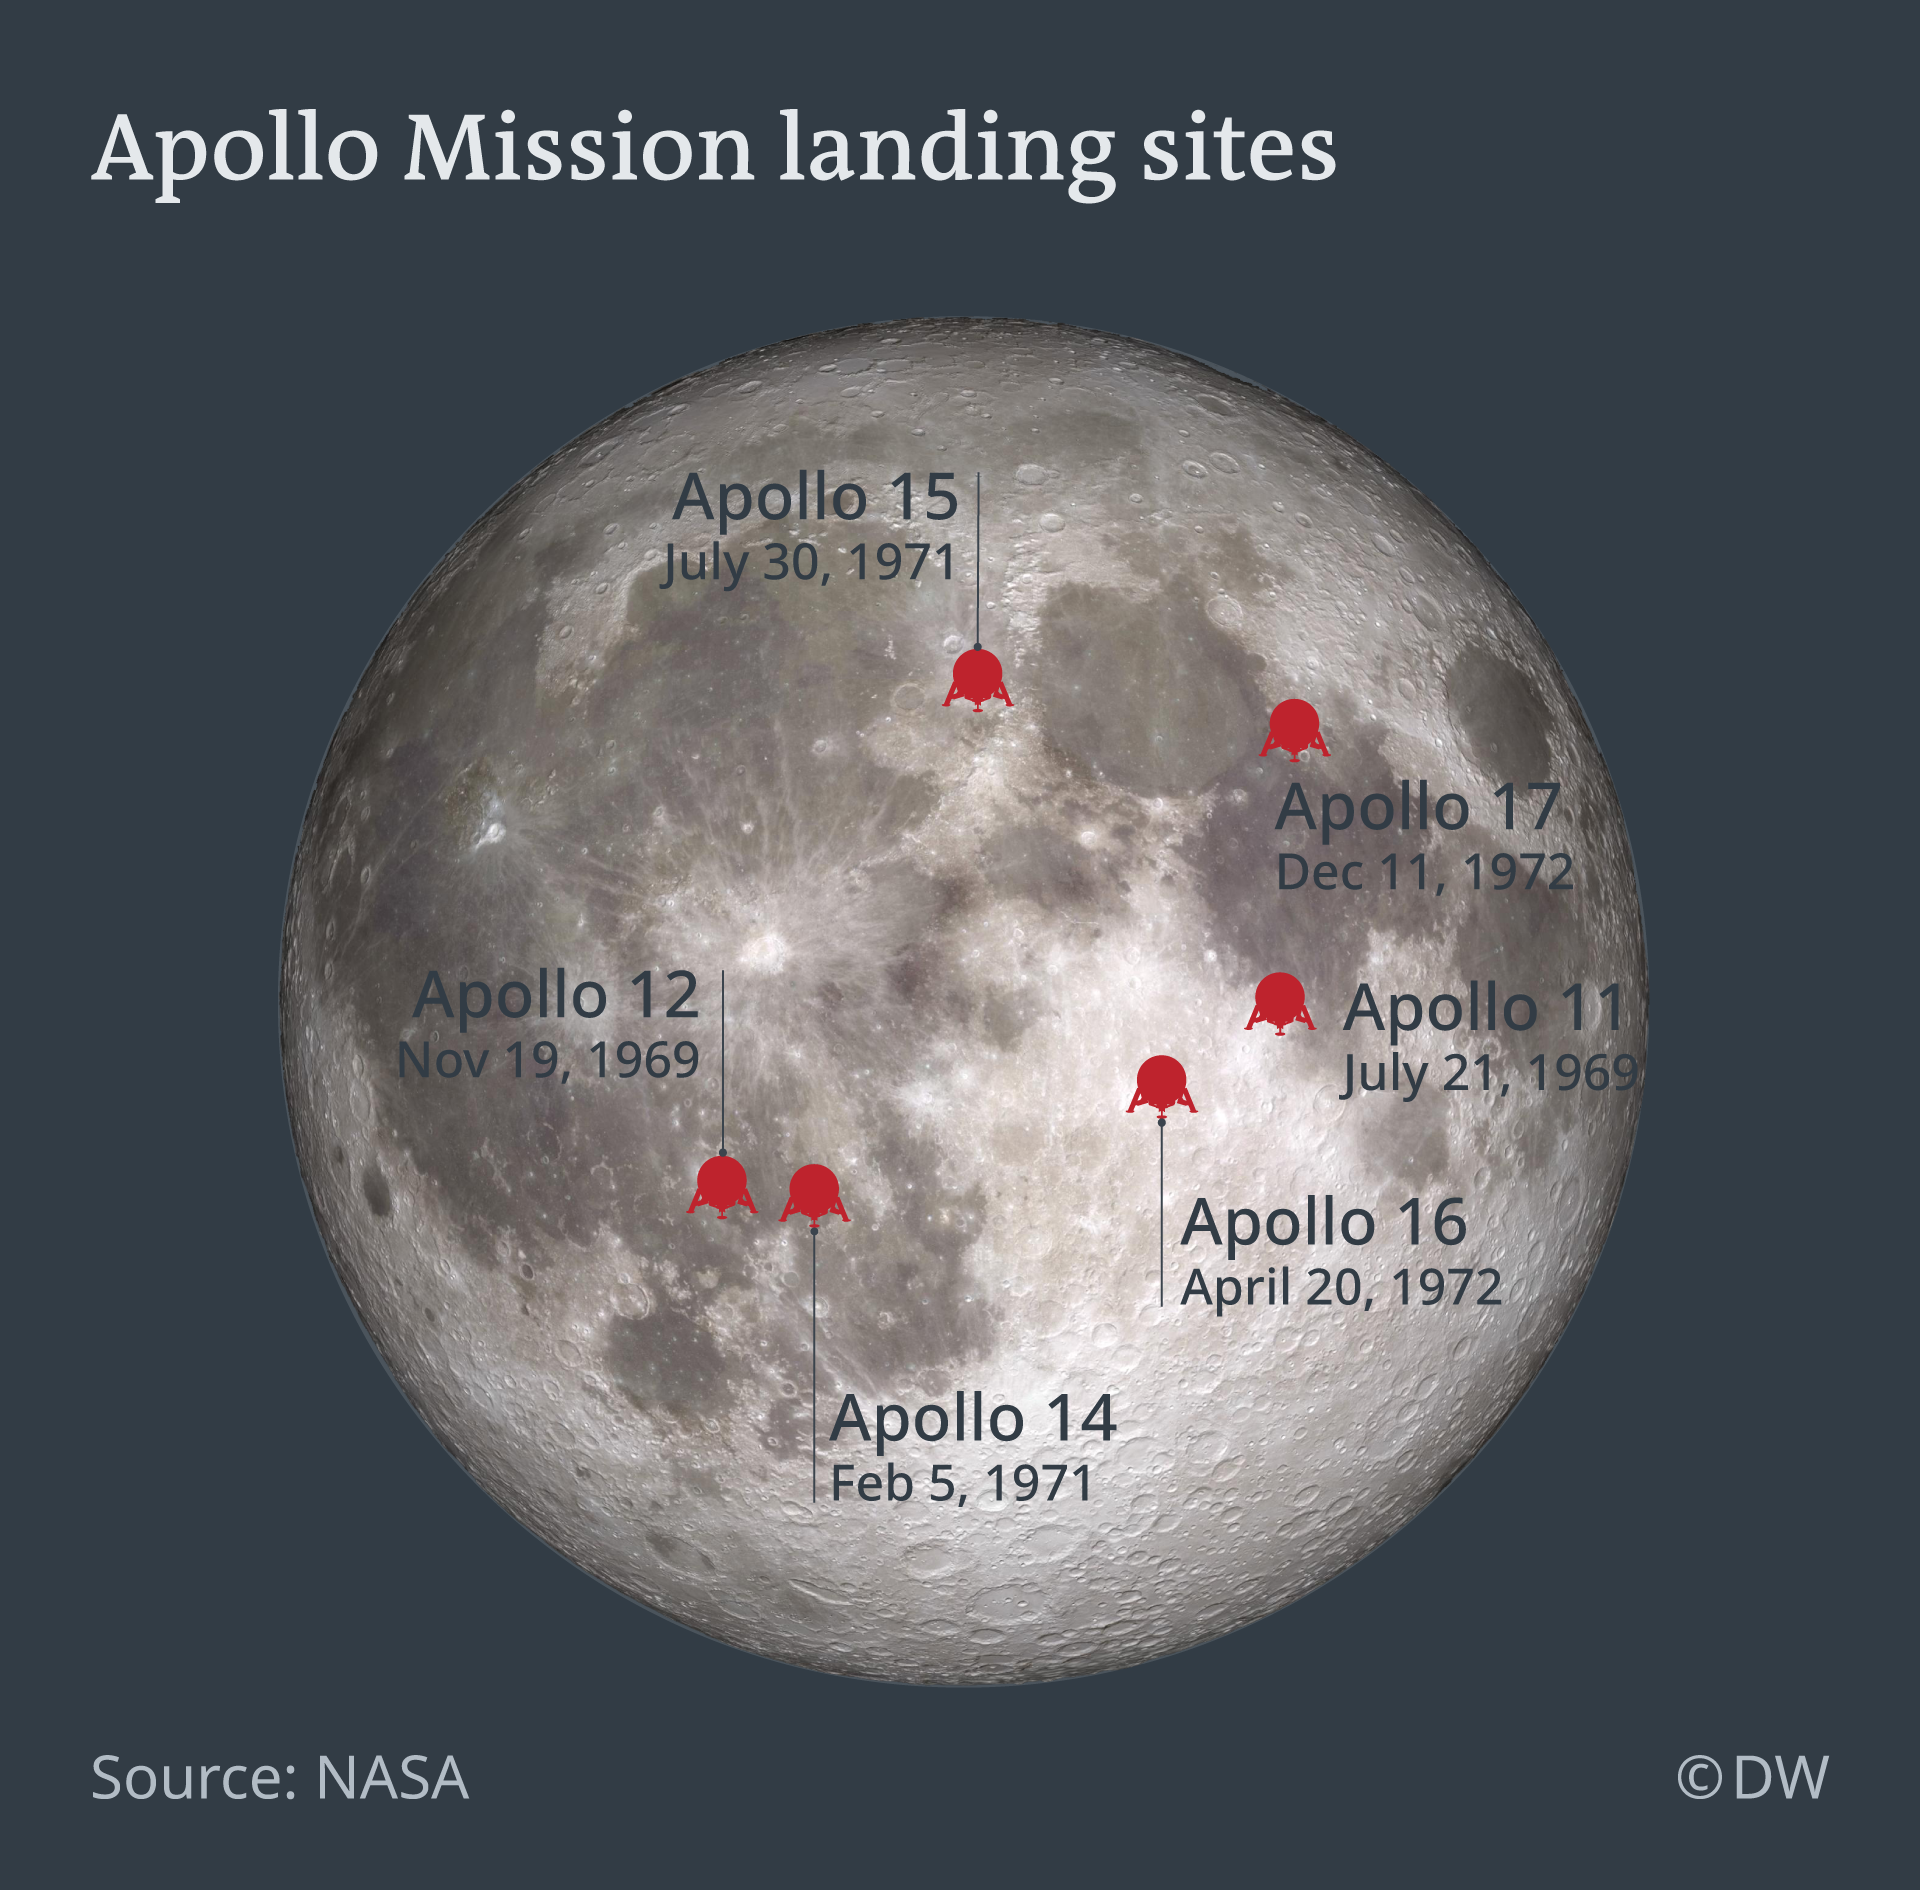 Infographic showing the six Apollo moon landings between 1969 and 1972